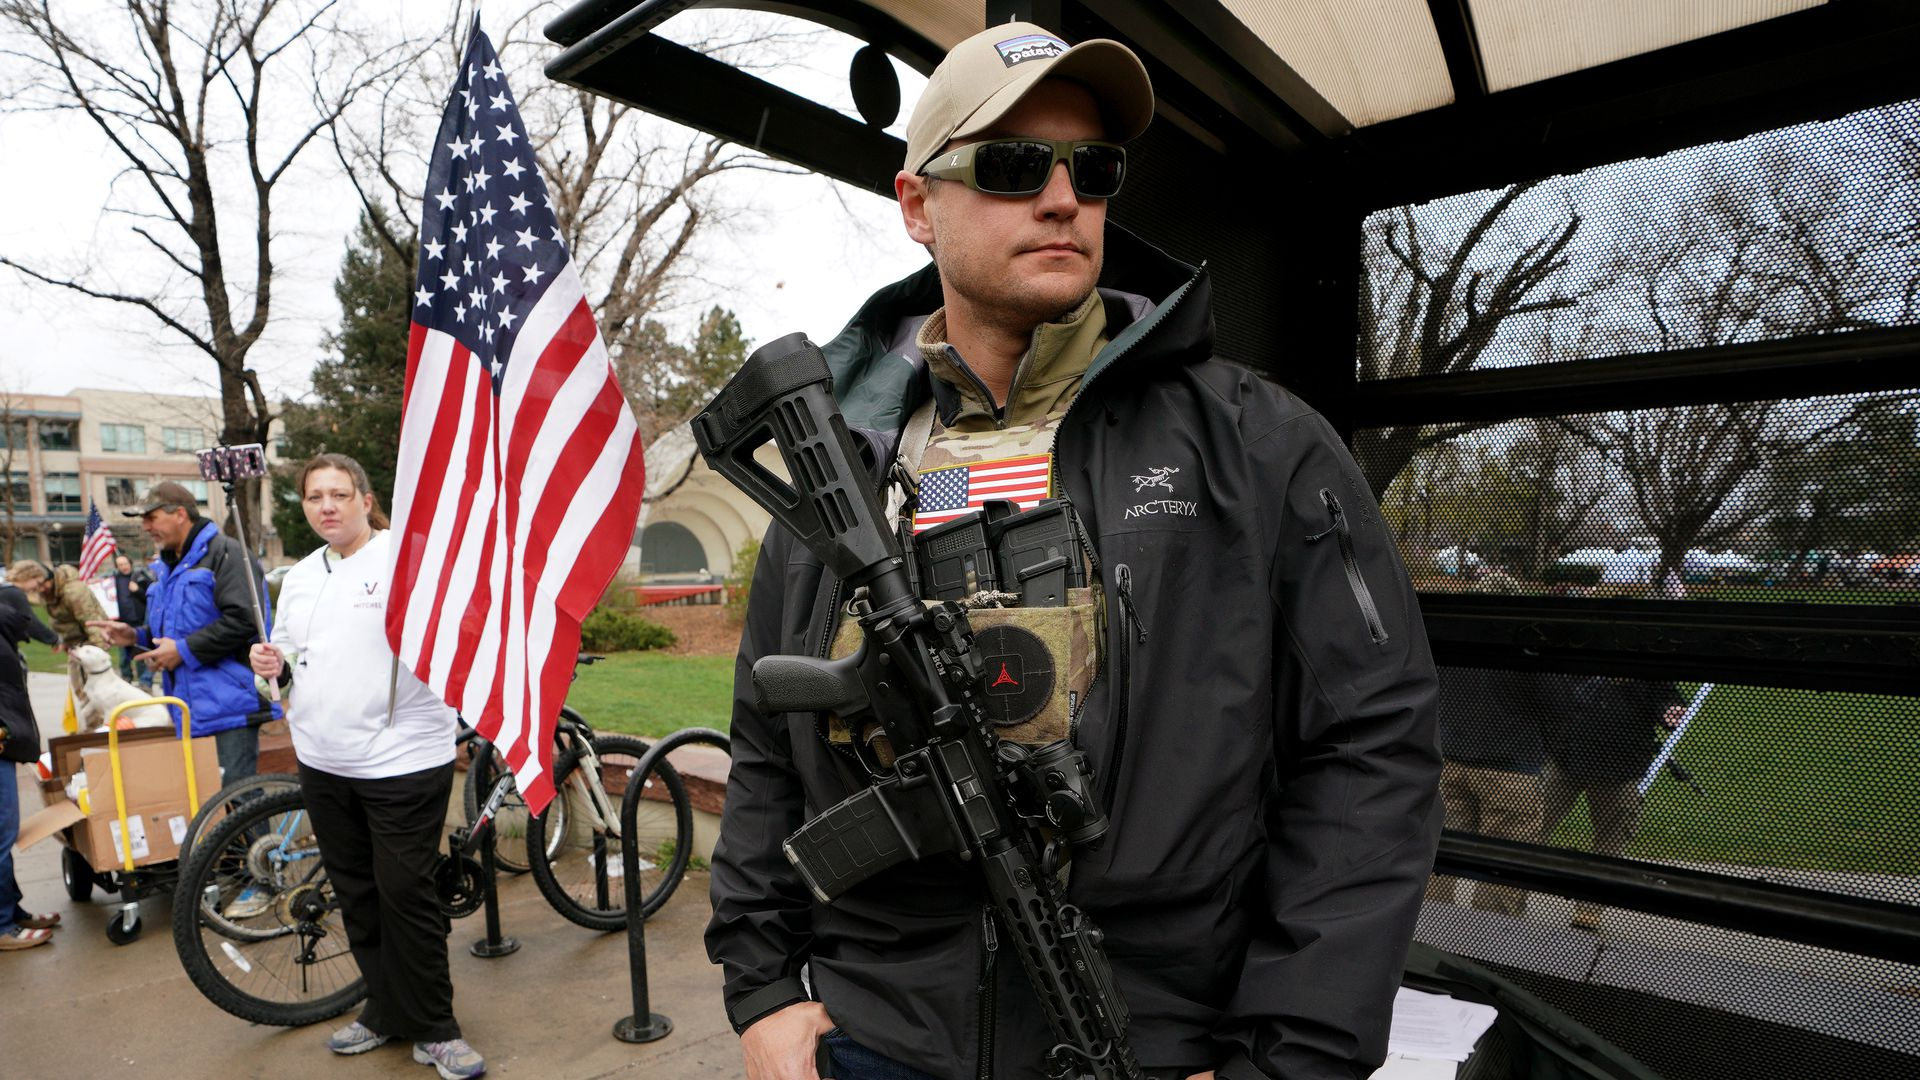 Man stands with an AR-15 rifle slung across his chest with an American flag in the background